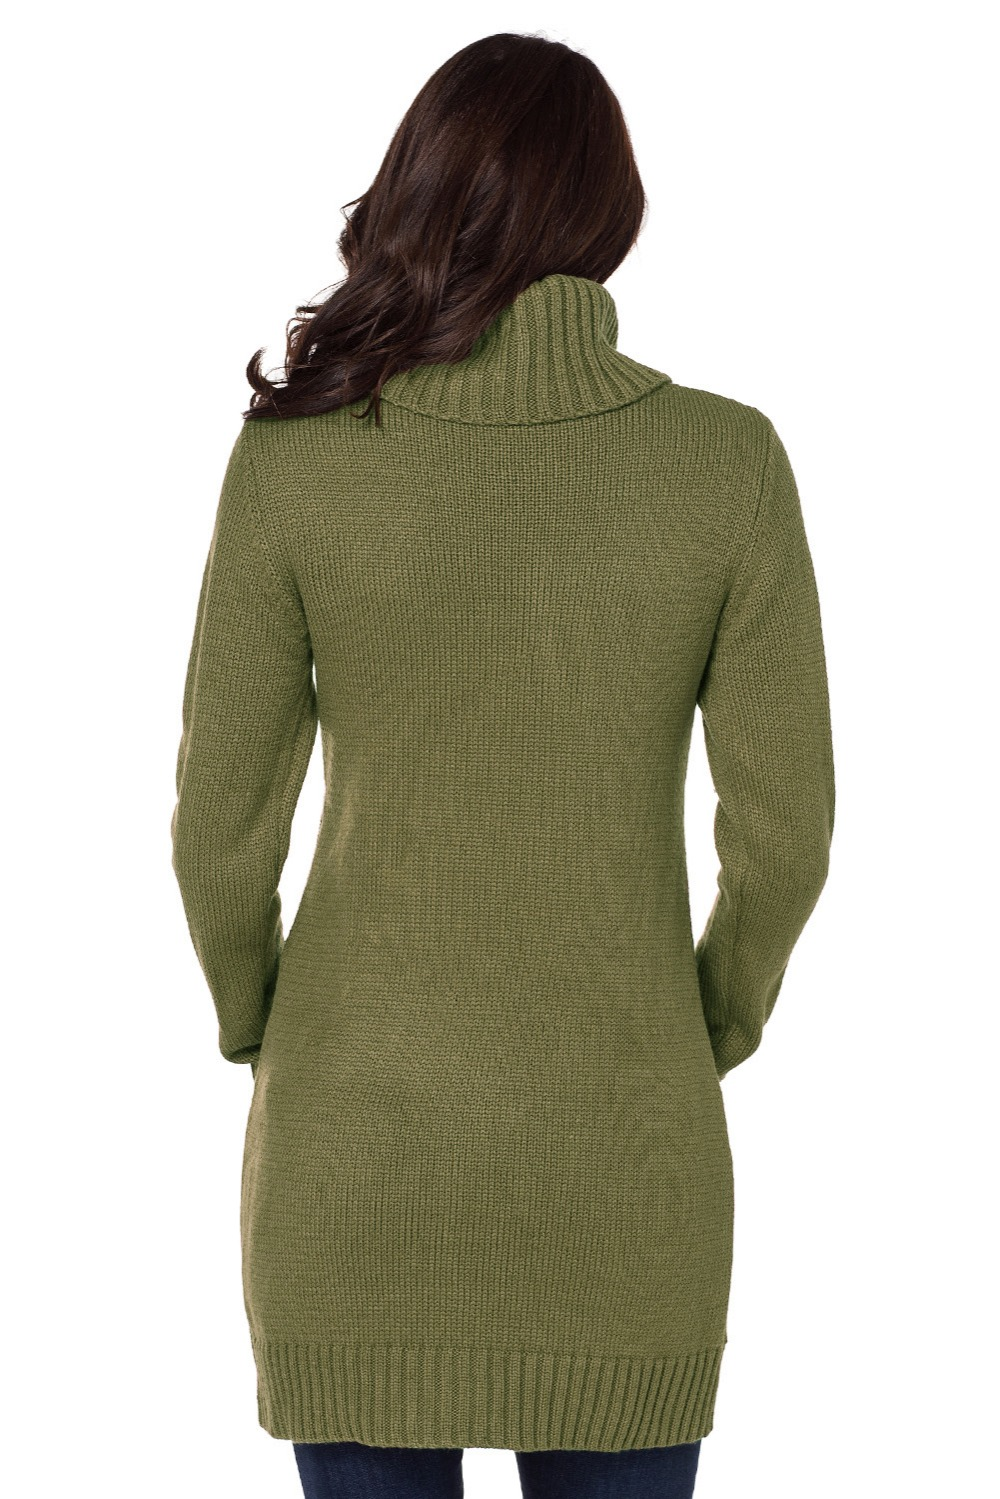 Olive-Cowl-Neck-Cable-Knit-Sweater-Dress-LC27836-9-2